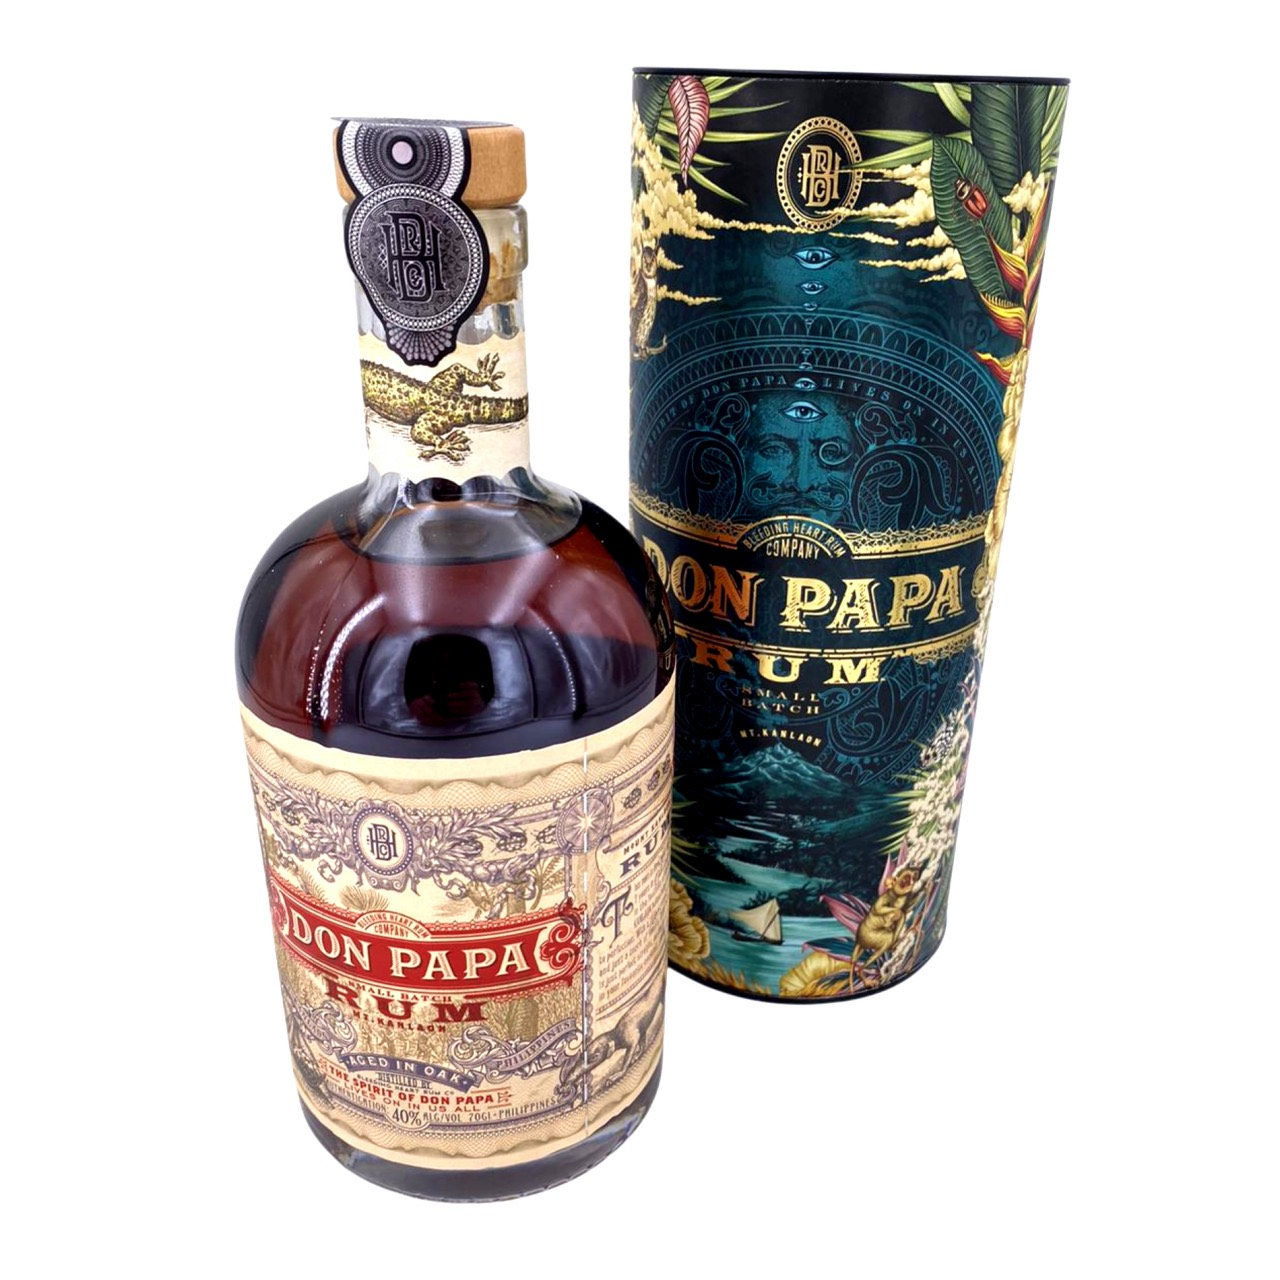 Bottle image of Don Papa Special Edition Cosmic